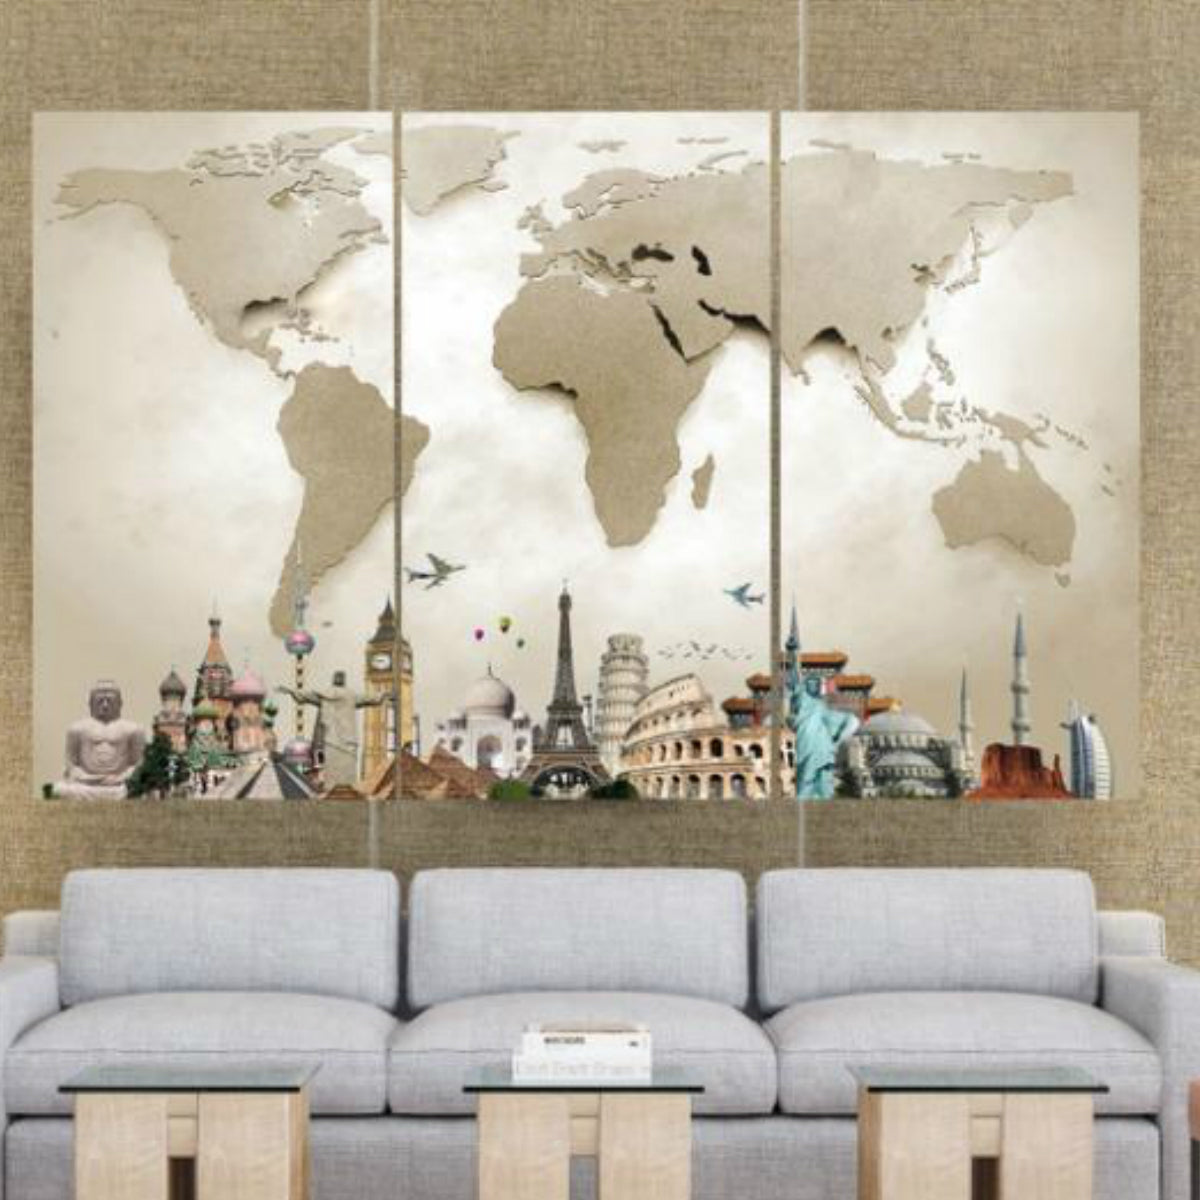 Around the world map canvas lush gothic around the world map canvas gumiabroncs Image collections